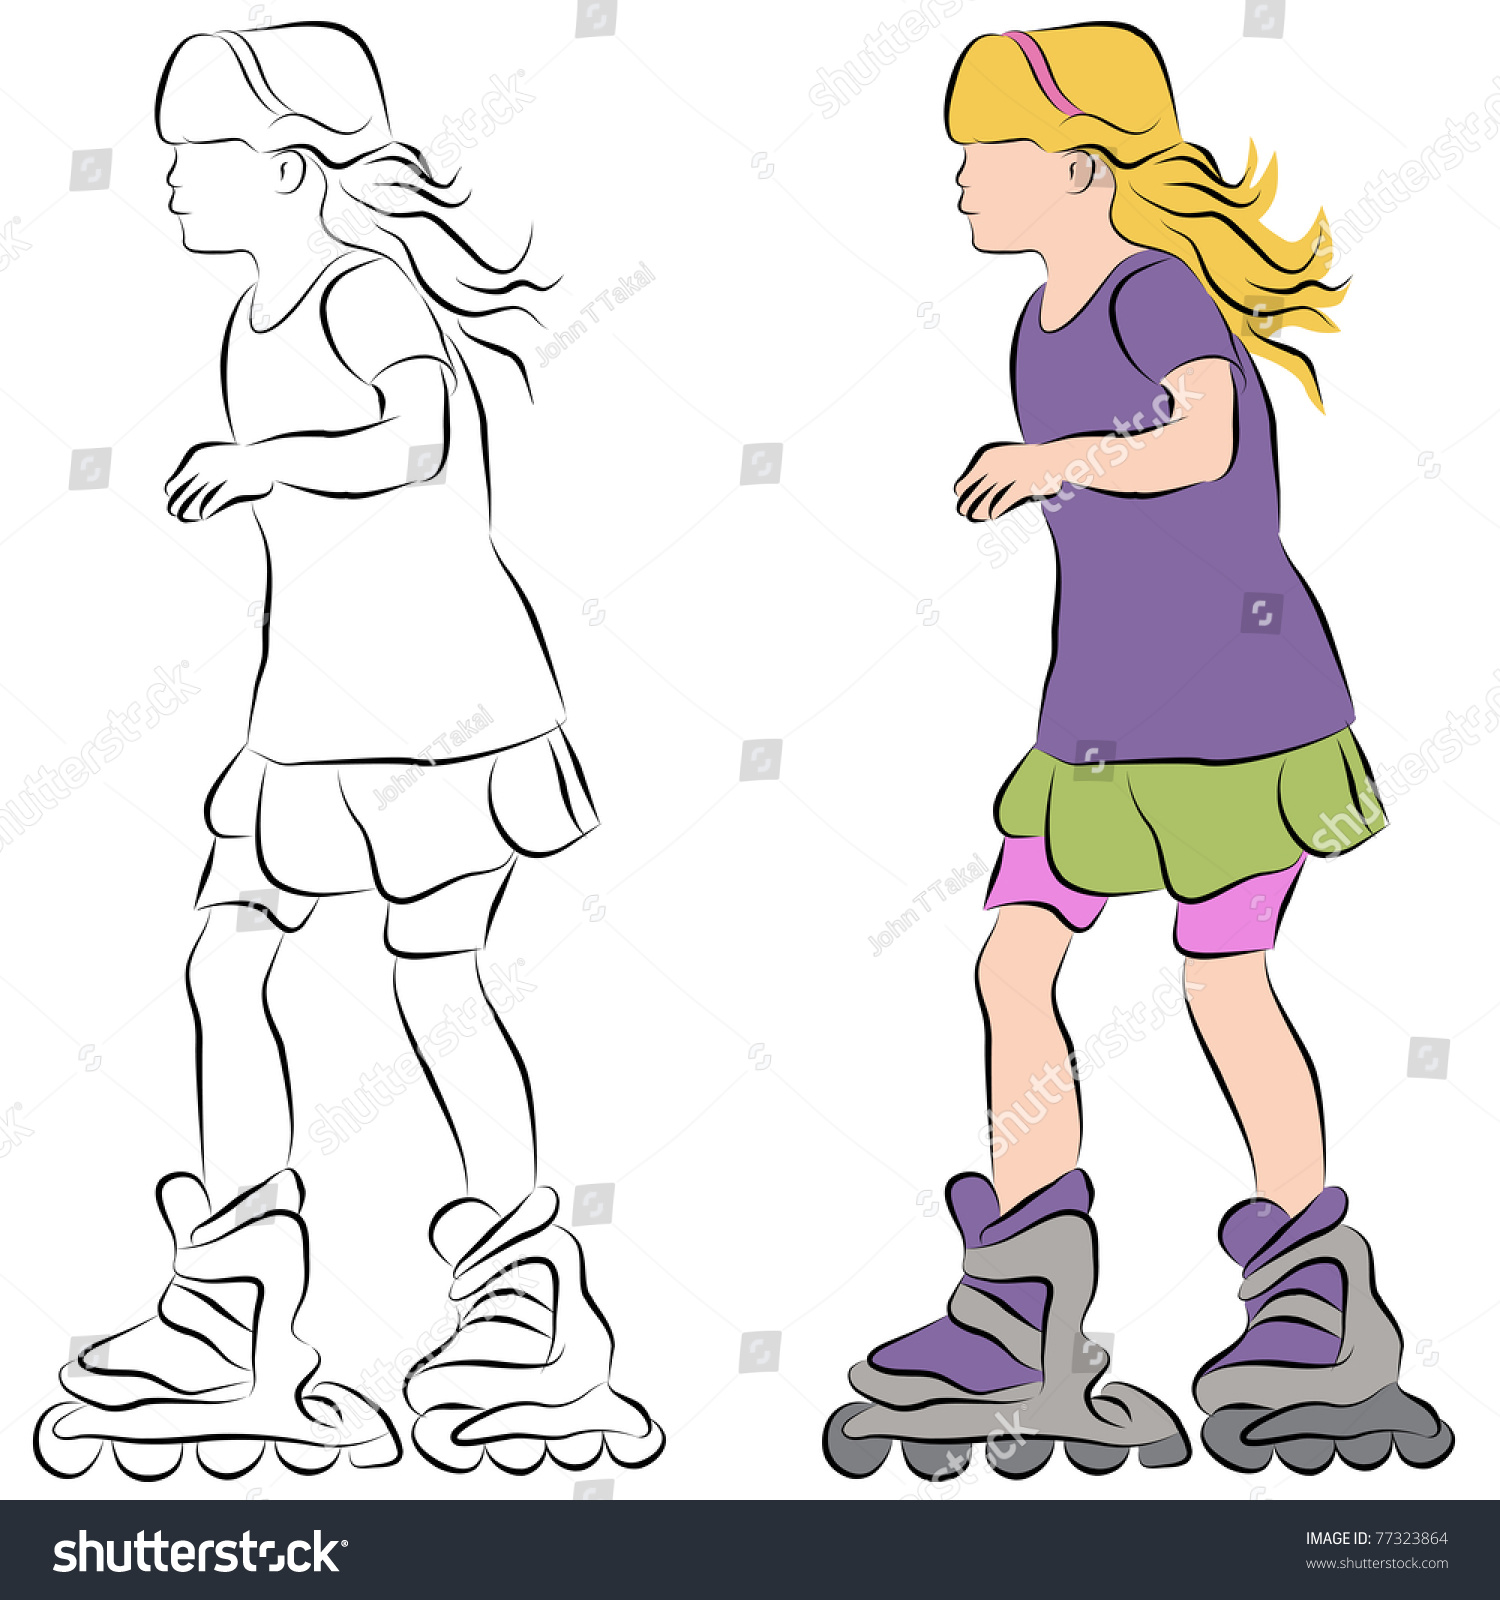 Line Drawing Little Girl : An image of a rollerblading little girl line drawing